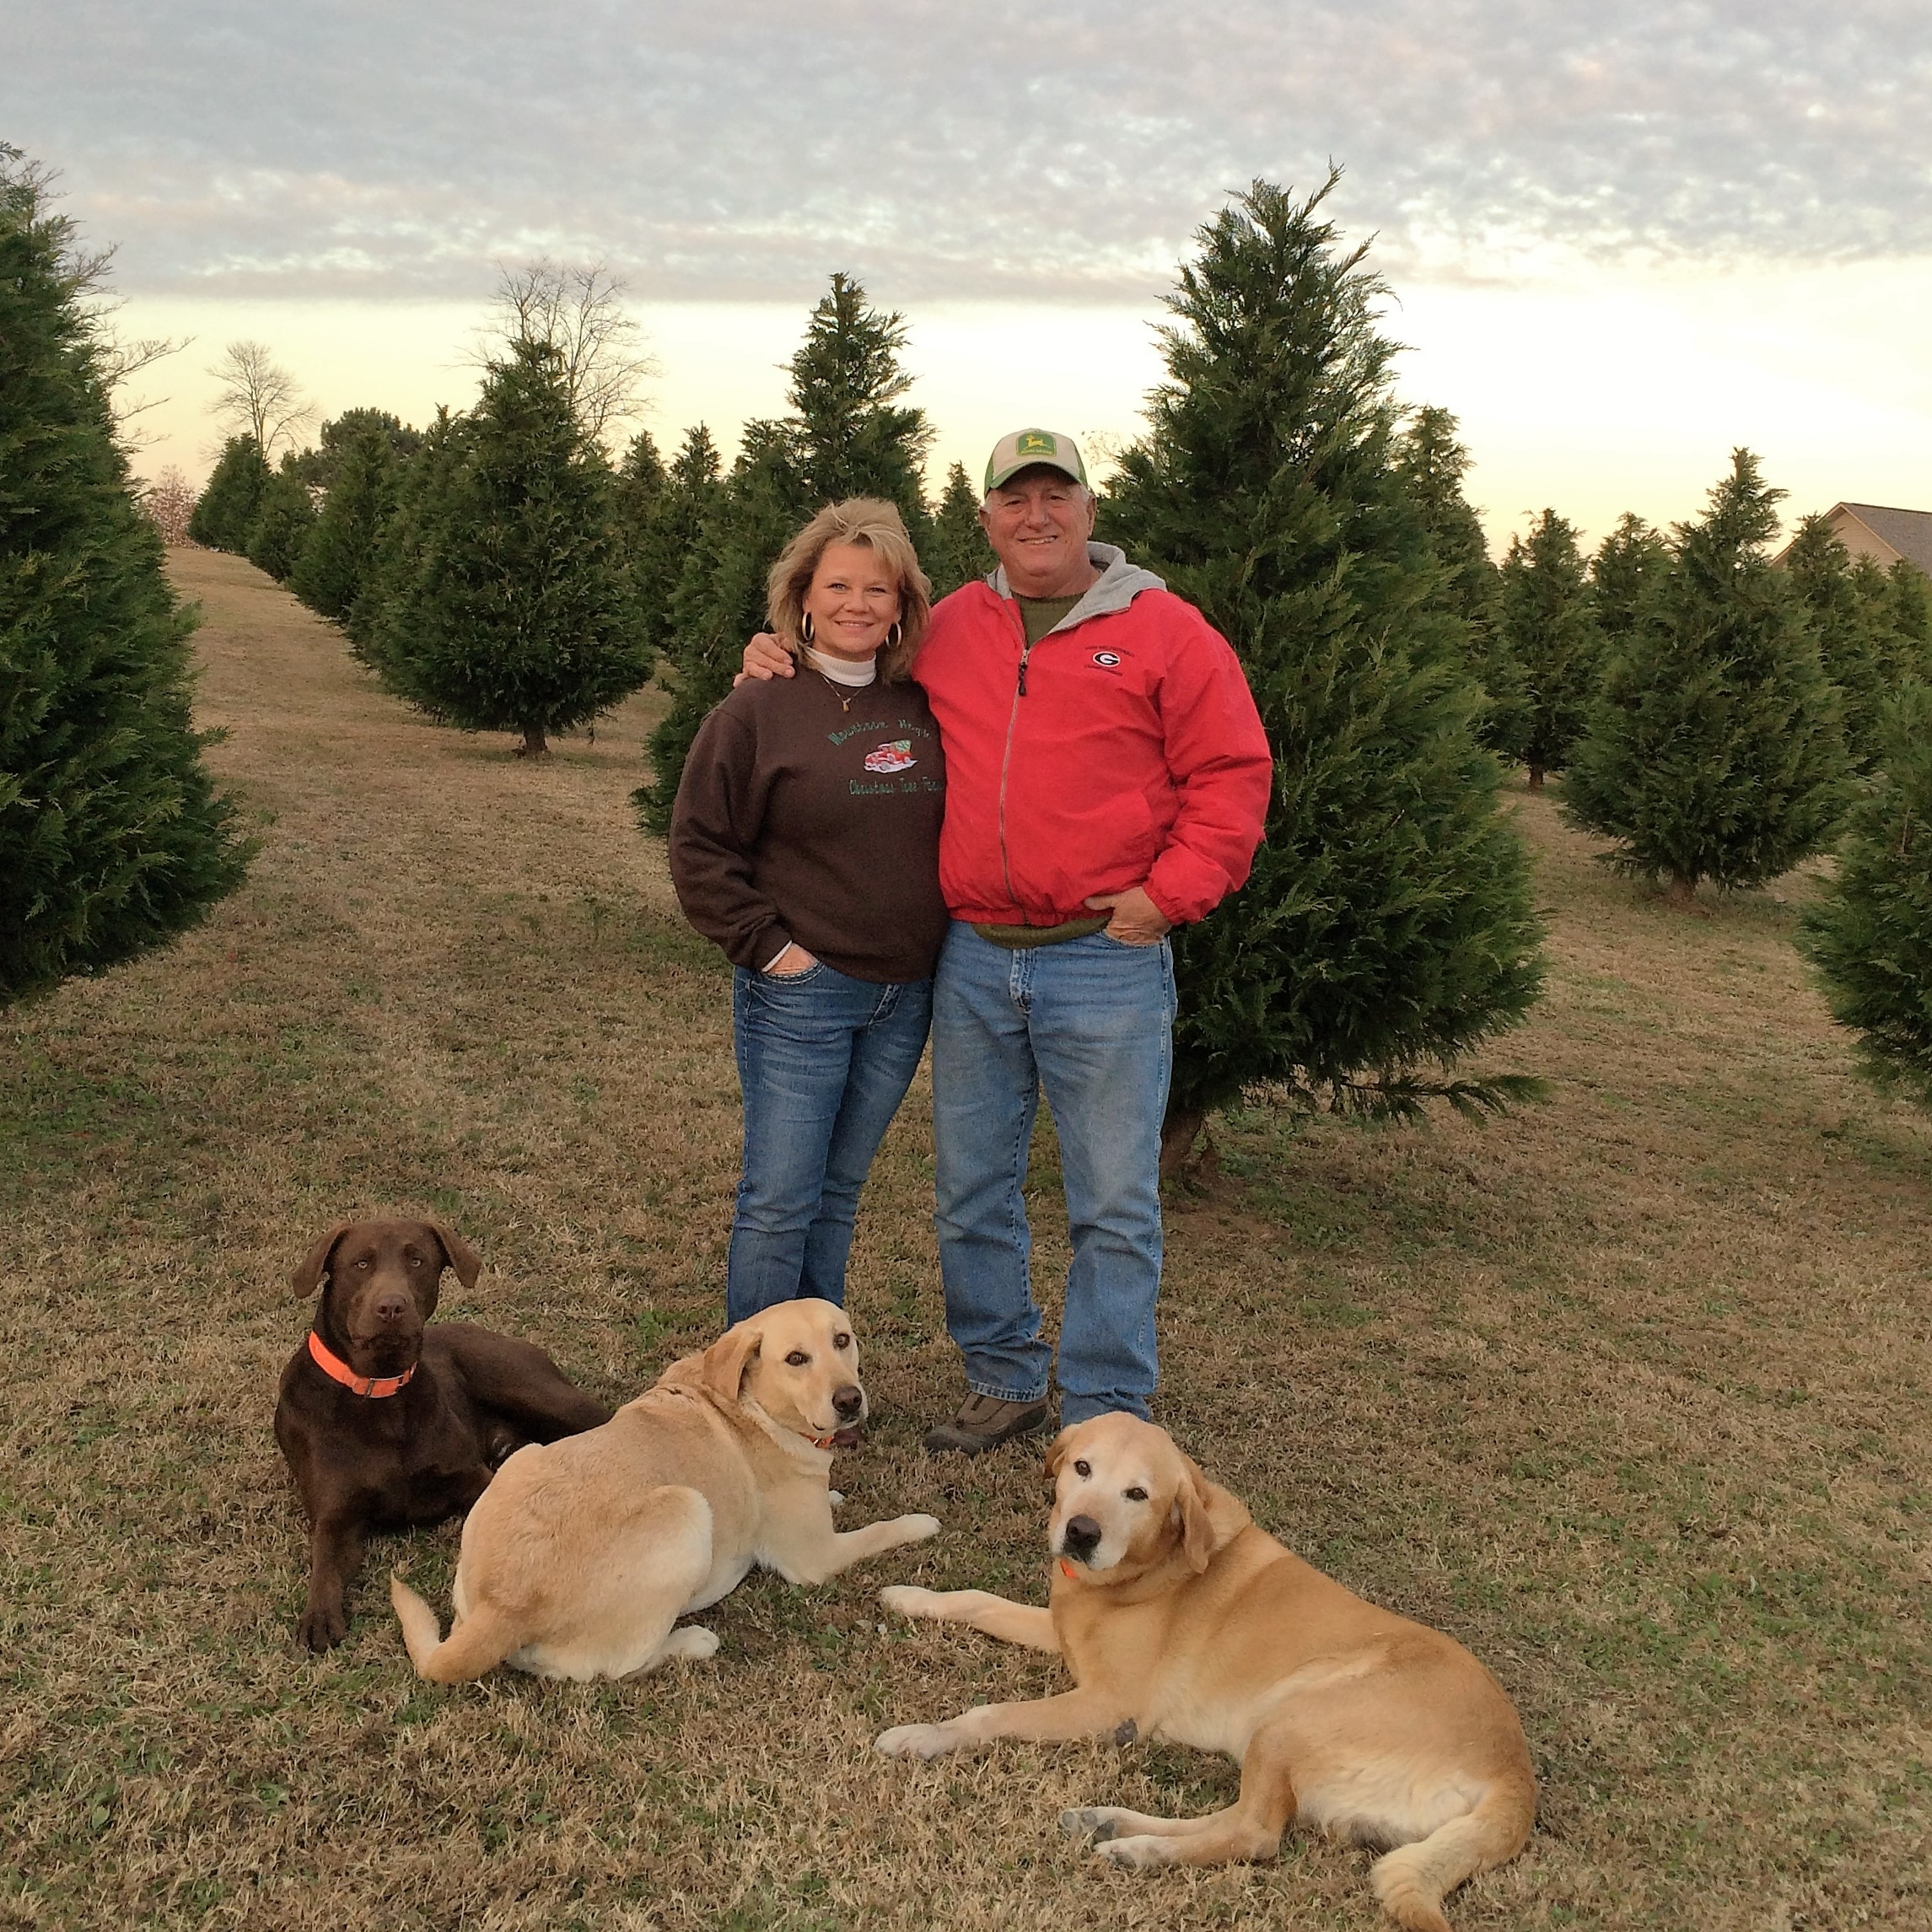 Mountain High Christmas Tree Farm